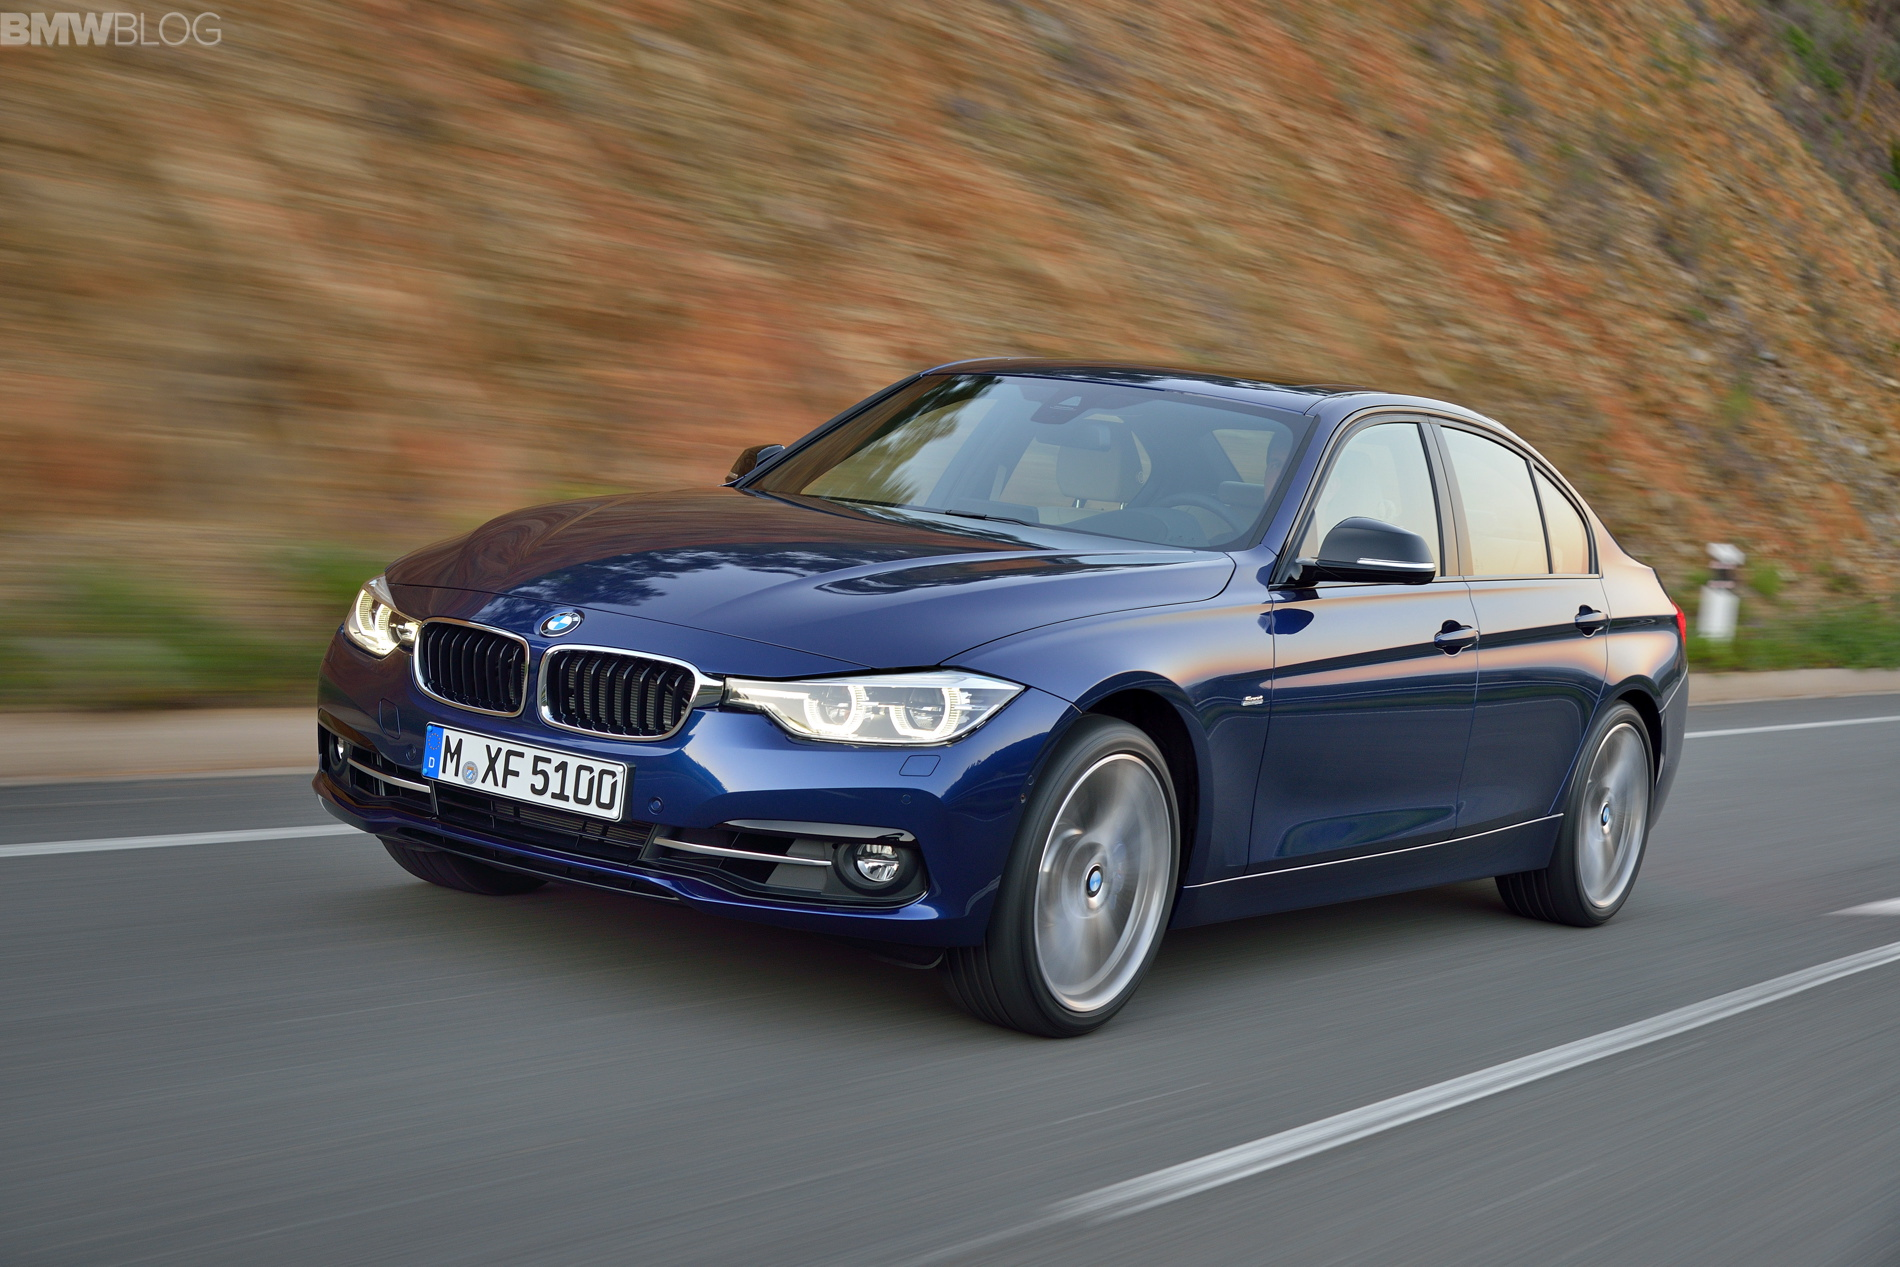 2015 Bmw 3 Series Facelift Exterior And Interior Changes